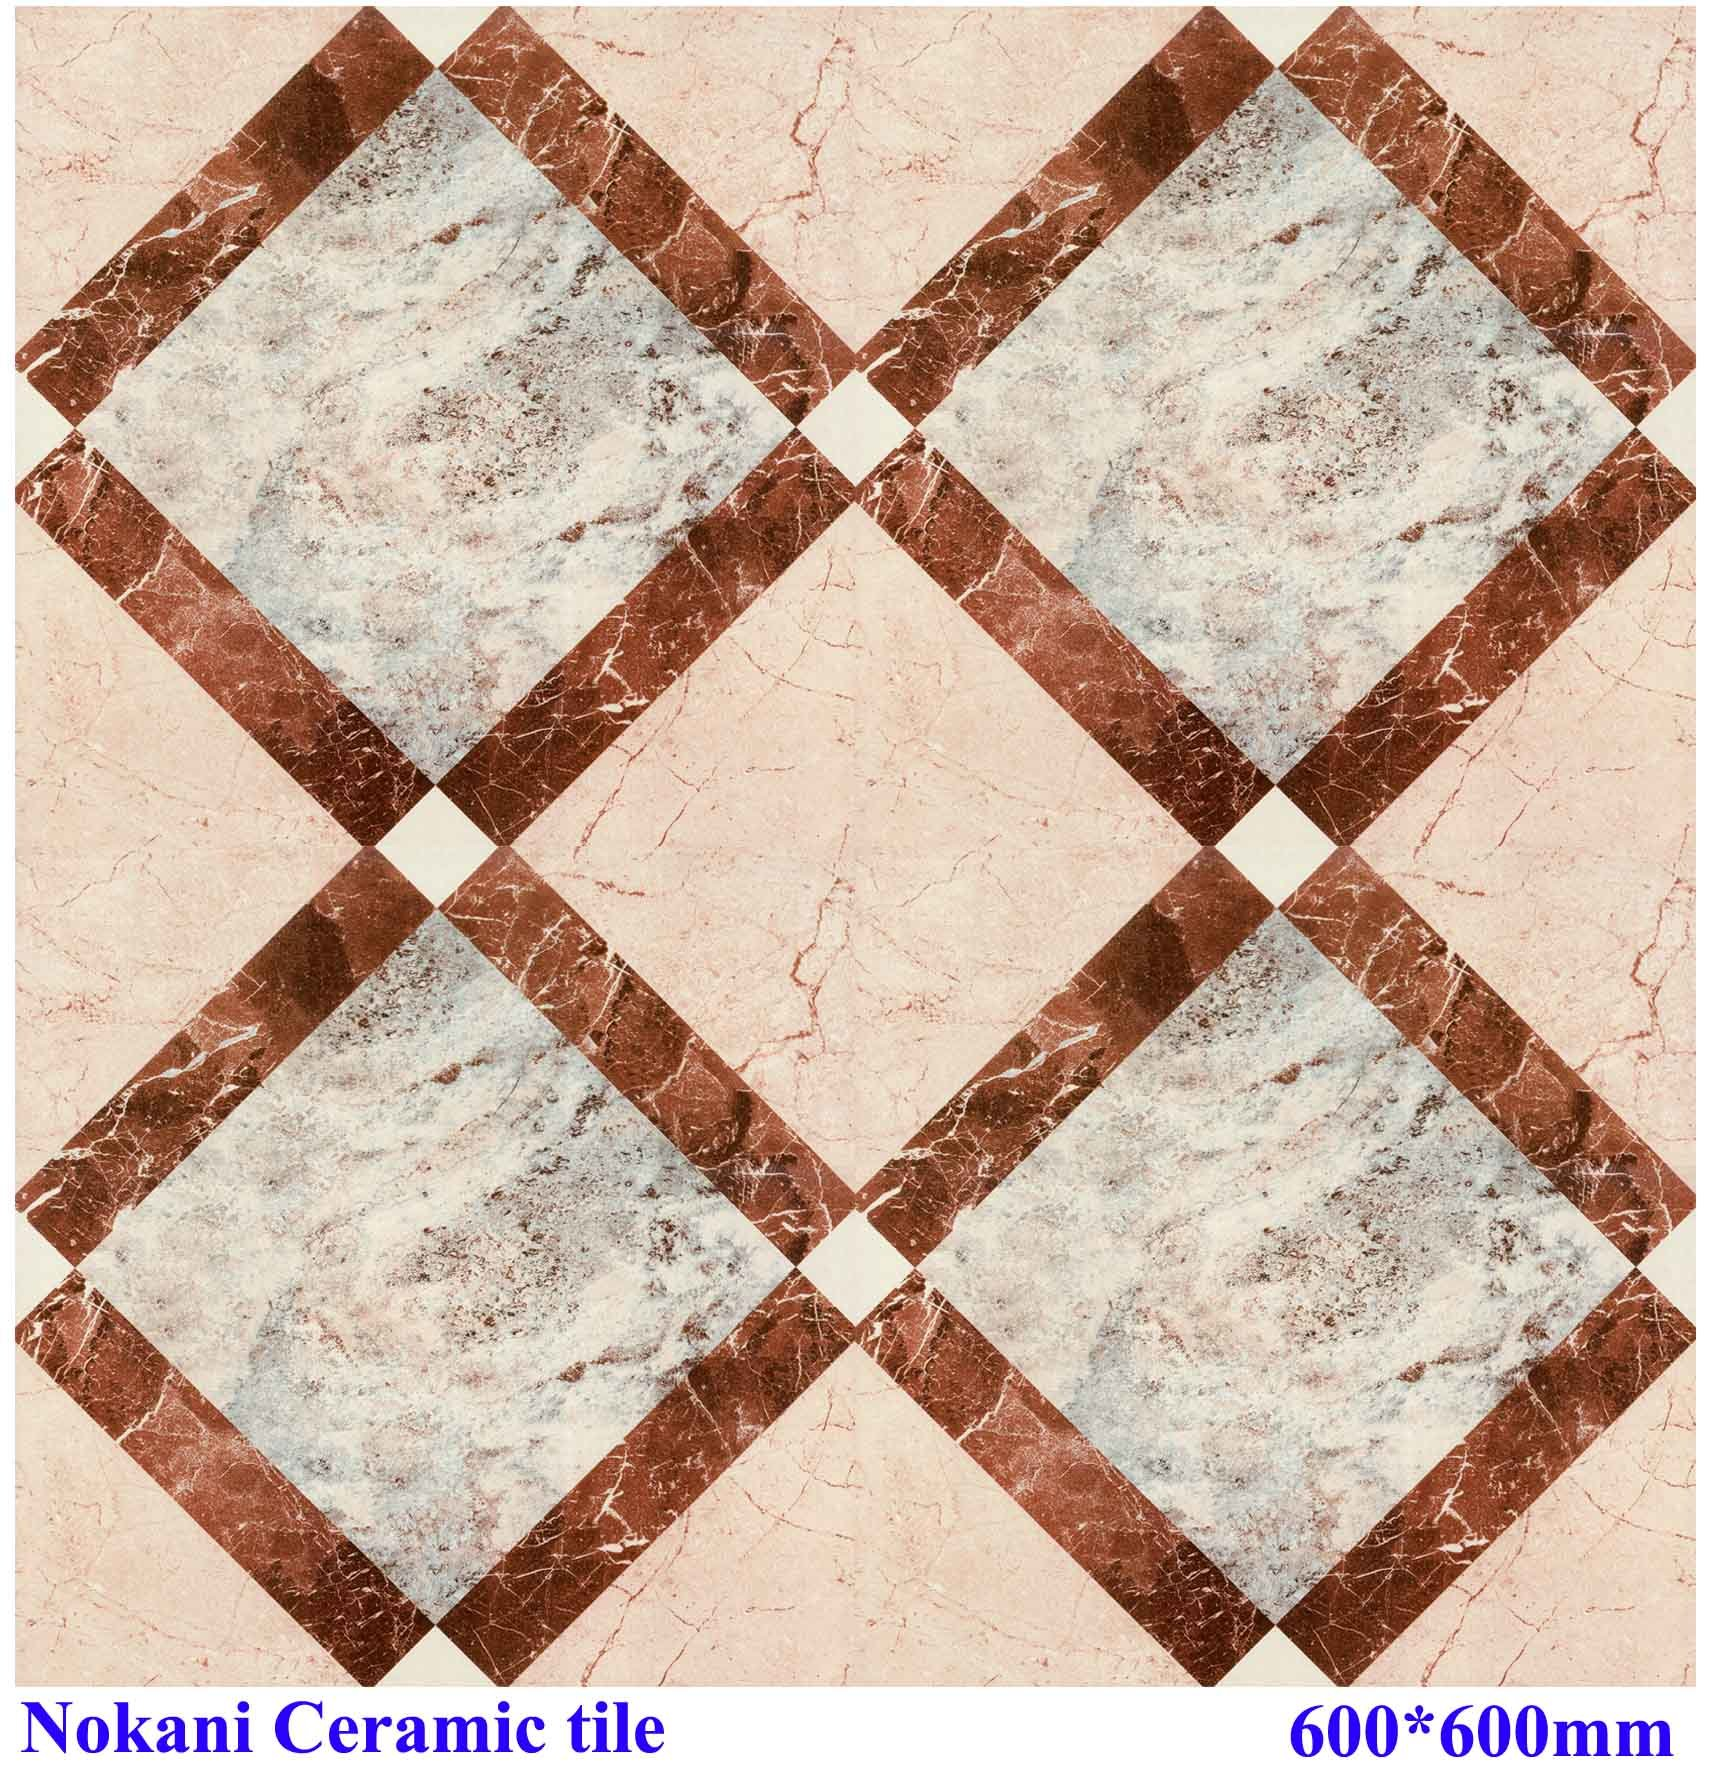 Floor tiles company images home flooring design ceramics tiles company gallery tile flooring design ideas ceramics tiles company image collections tile flooring design dailygadgetfo Images